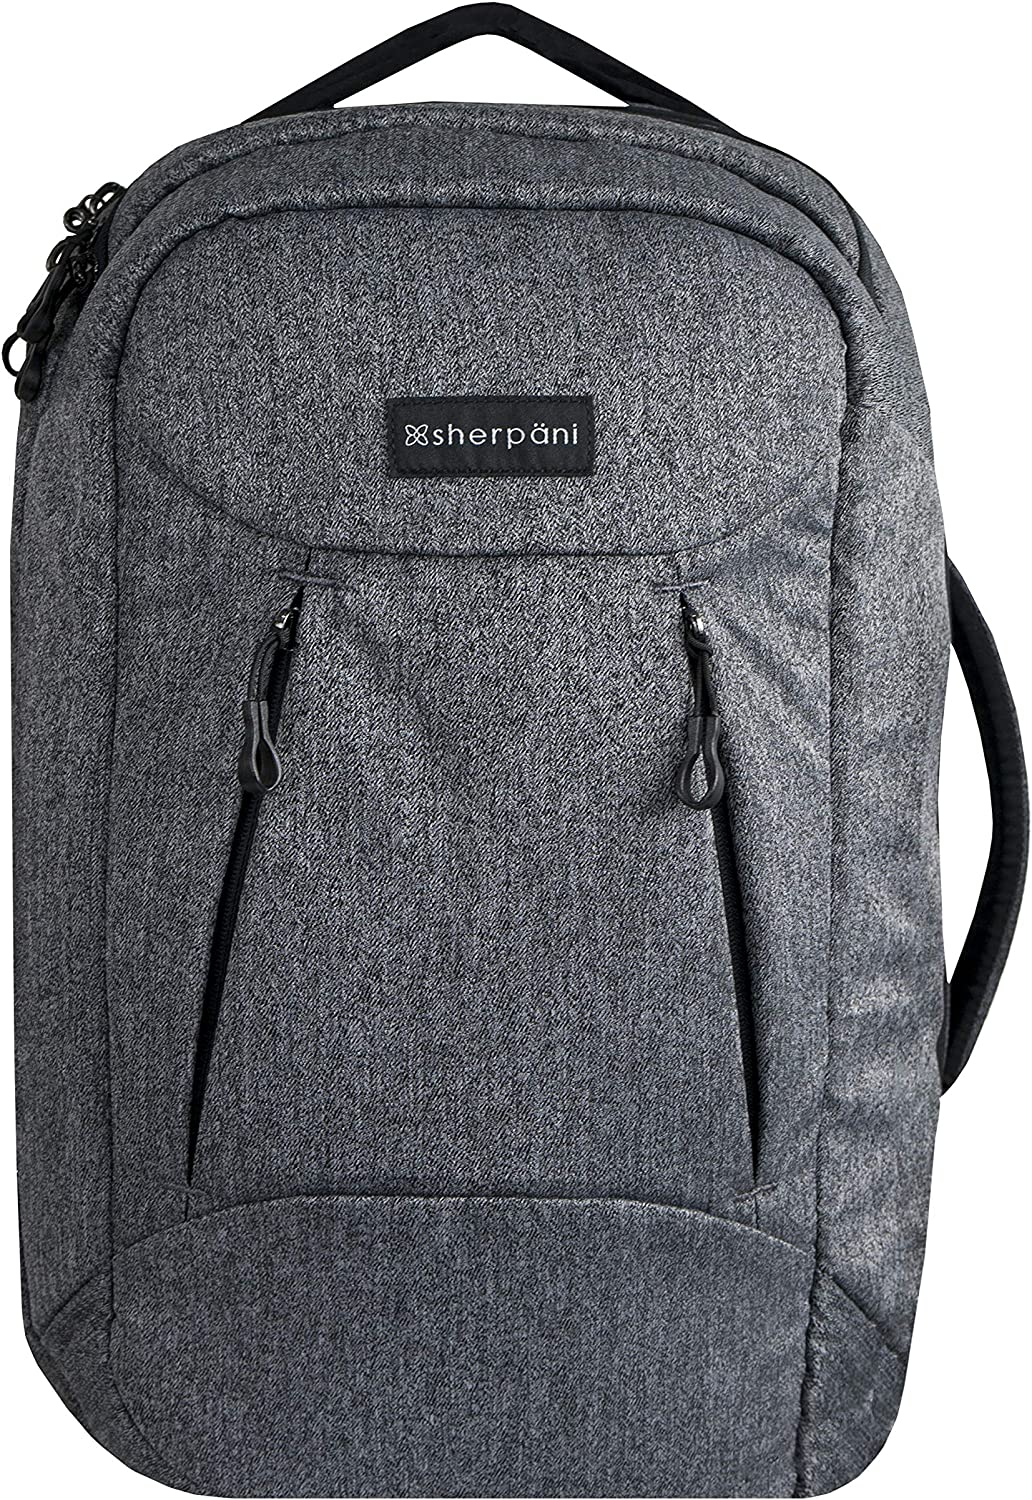 Sherpani Oslo Hiking Backpack